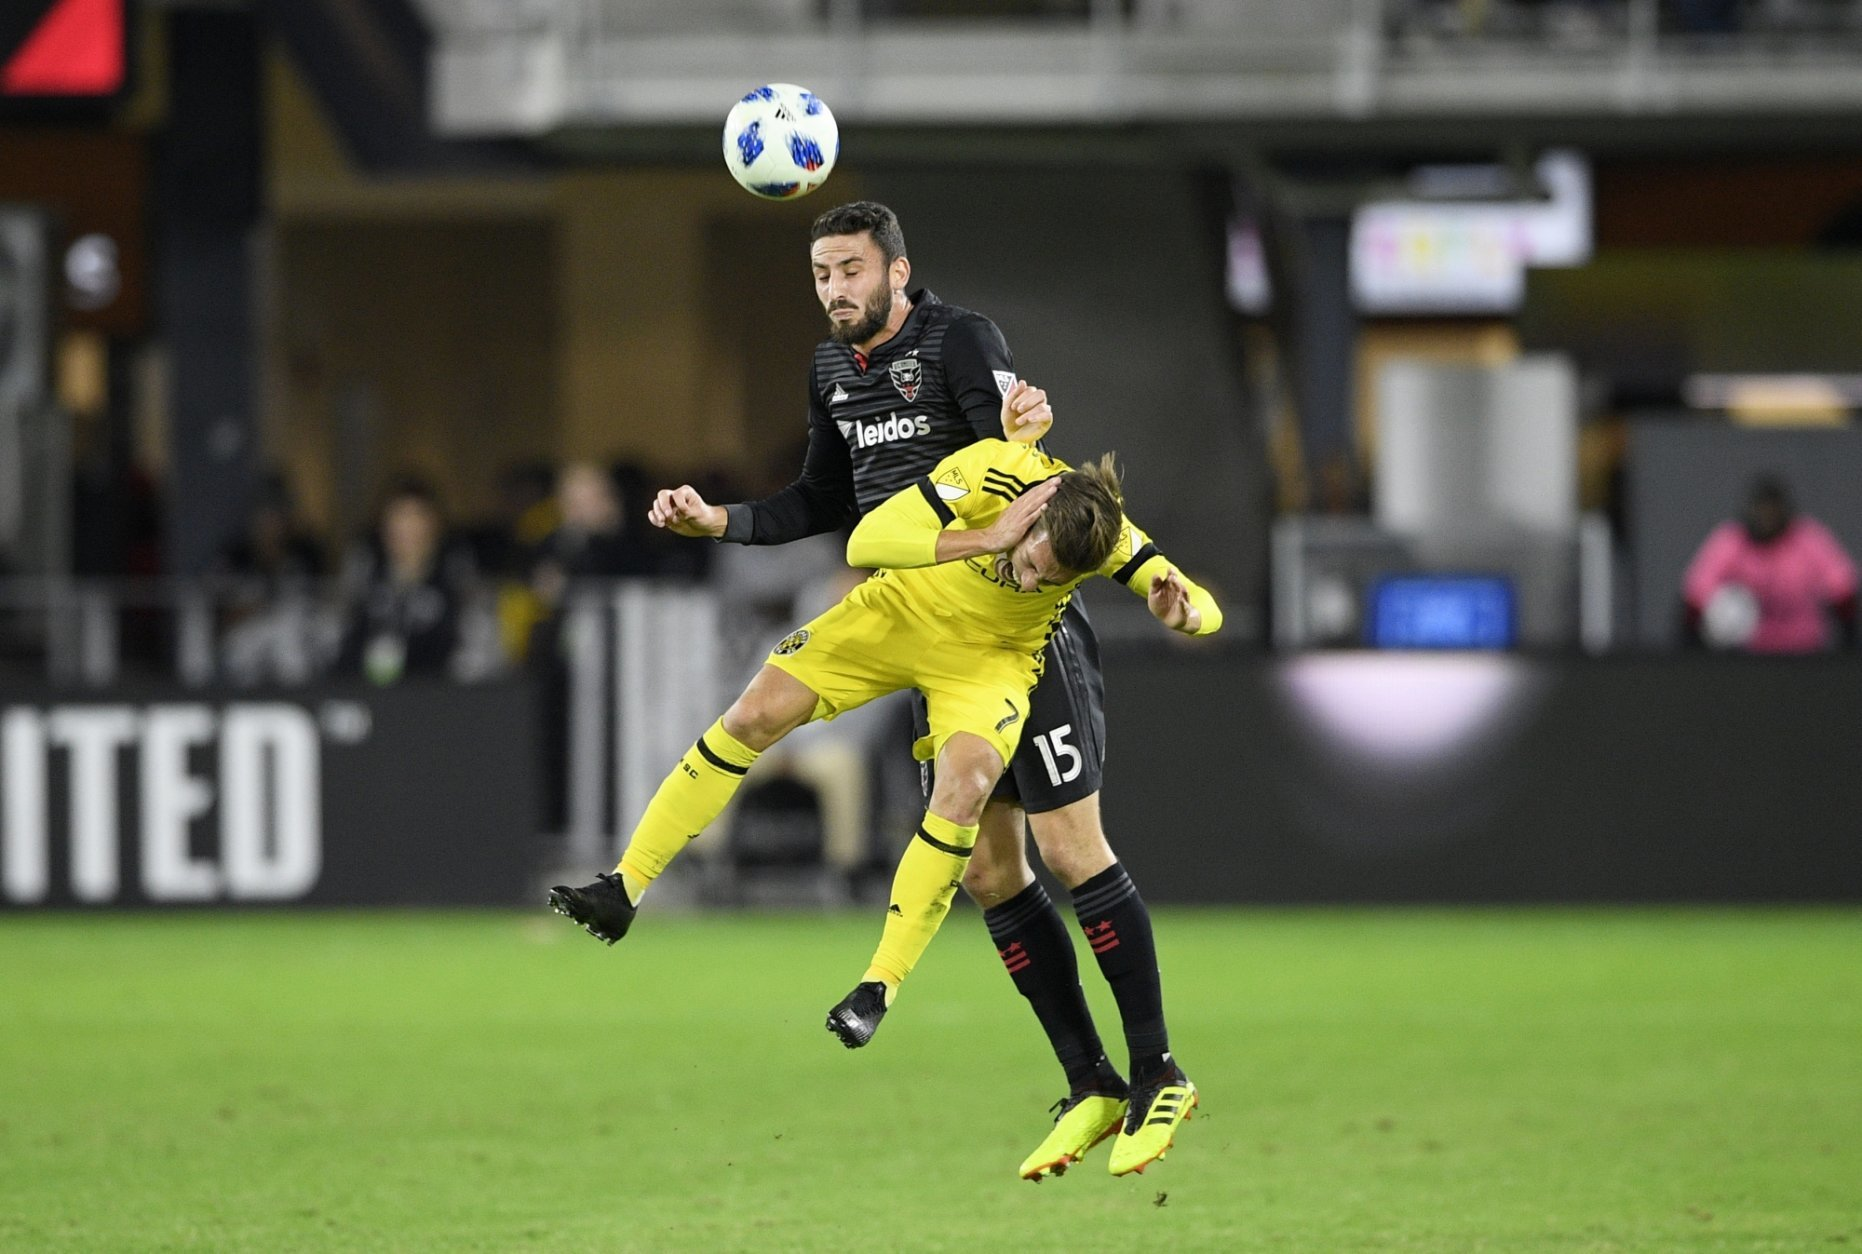 D.C. United defender Steve Birnbaum (15) batted for the ball against Columbus Crew SC midfielder Pedro Santos (7) during the first half of an MLS playoff soccer match, Thursday, Nov. 1, 2018, in Washington. (AP Photo/Nick Wass)